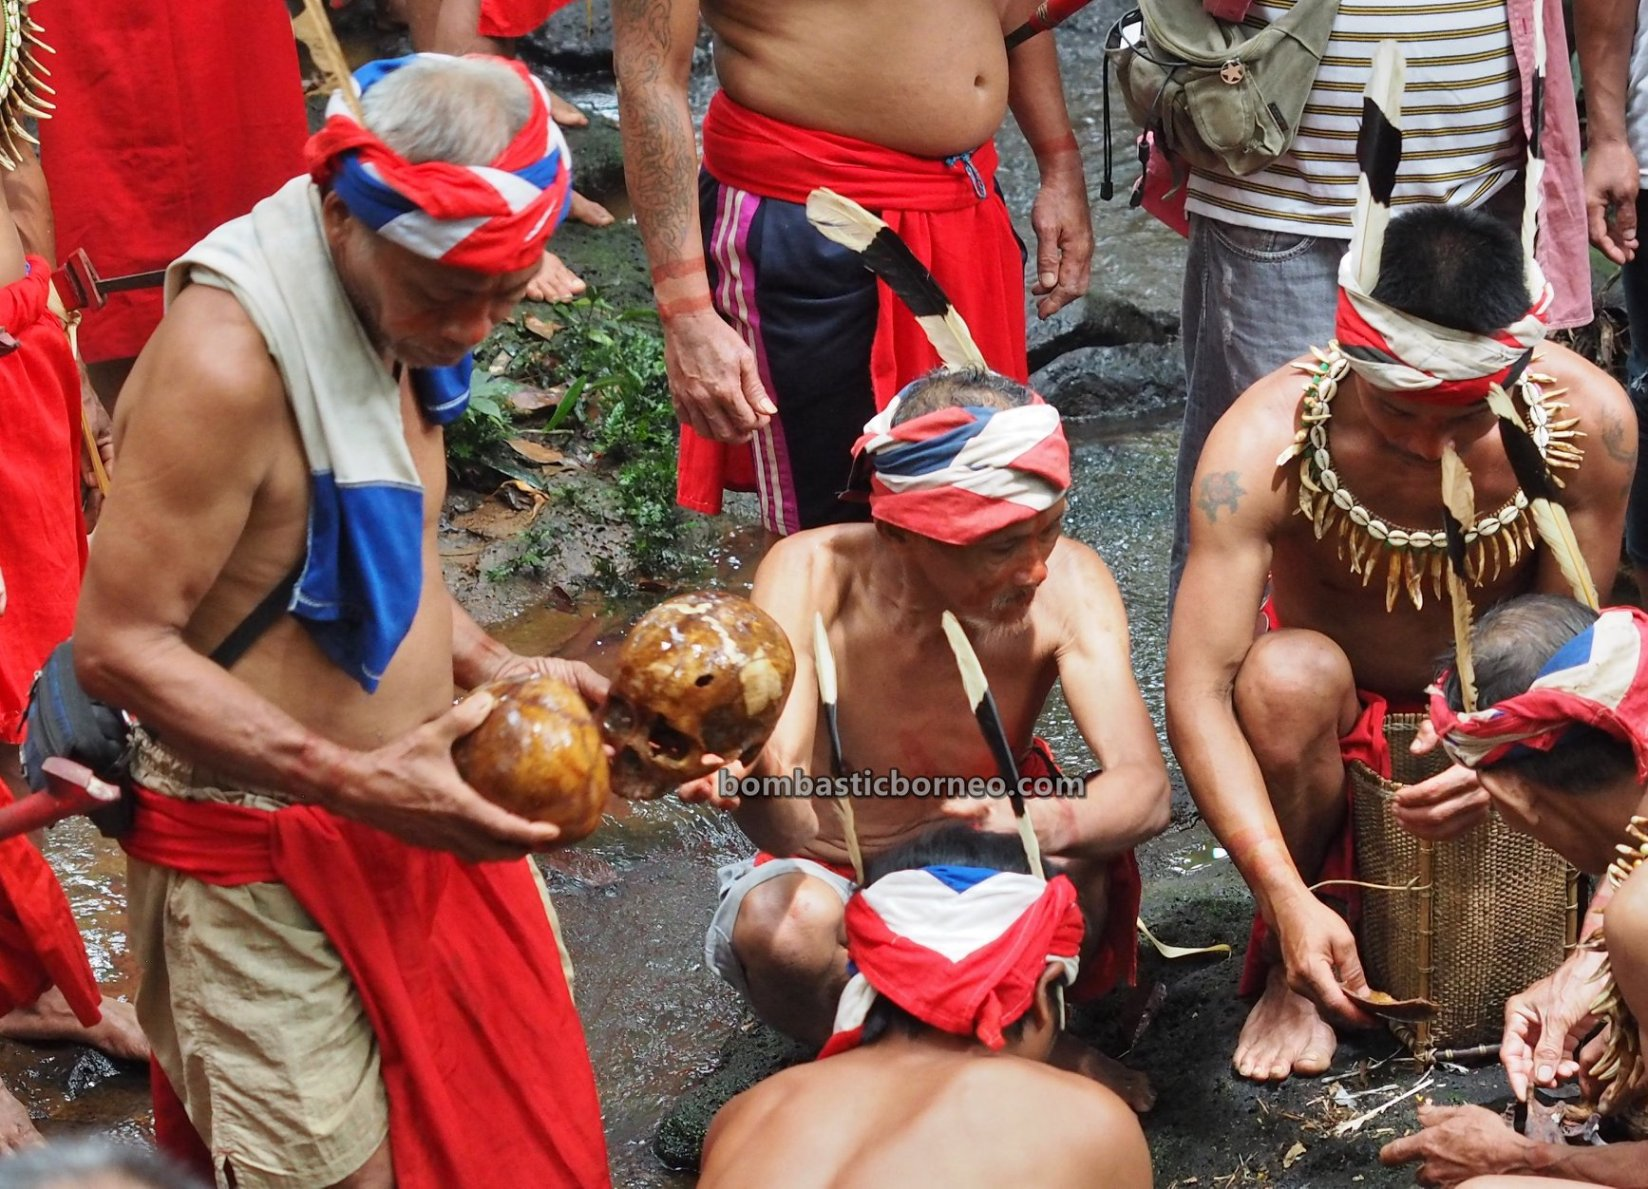 Mandi Tengkorak, Nyobeng Rambai, Harvest Festival, authentic, ritual, culture, Indonesia, West Kalimantan, Bengkayang, Desa Sahan, Dayak Bidayuh, tribal, Tourism, tourist attraction, travel guide, Trans Borneo